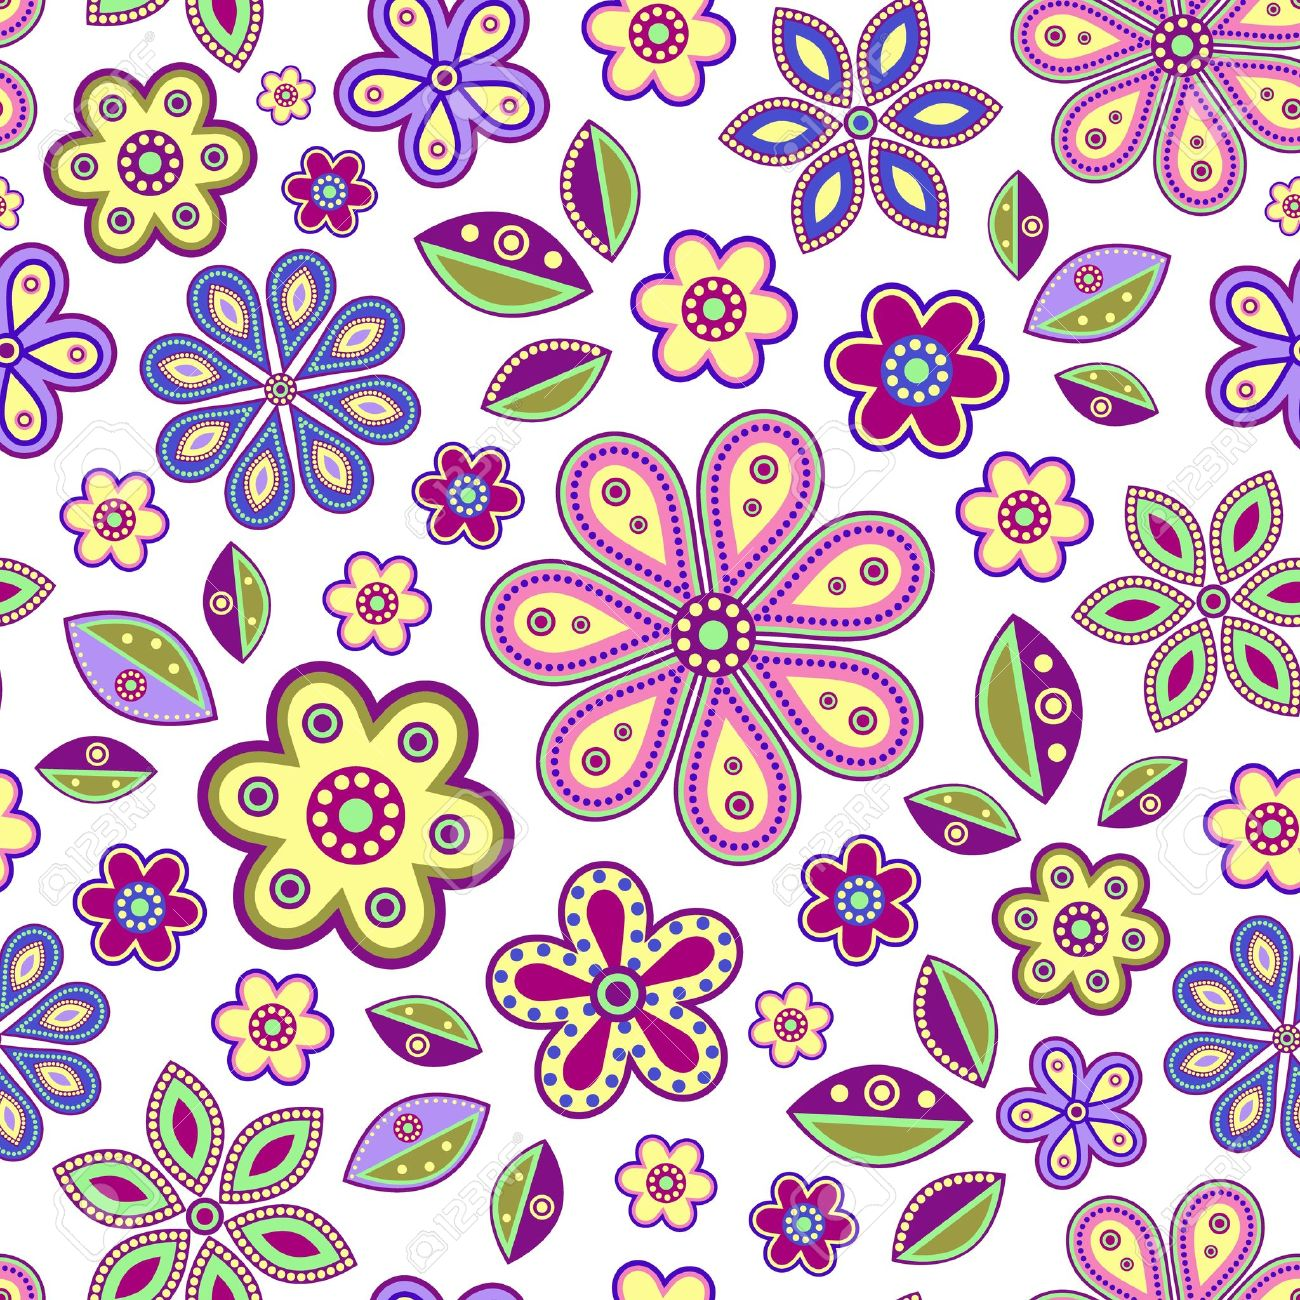 illustration of  seamless with colorful abstract flowers on white background Stock Vector - 14789448